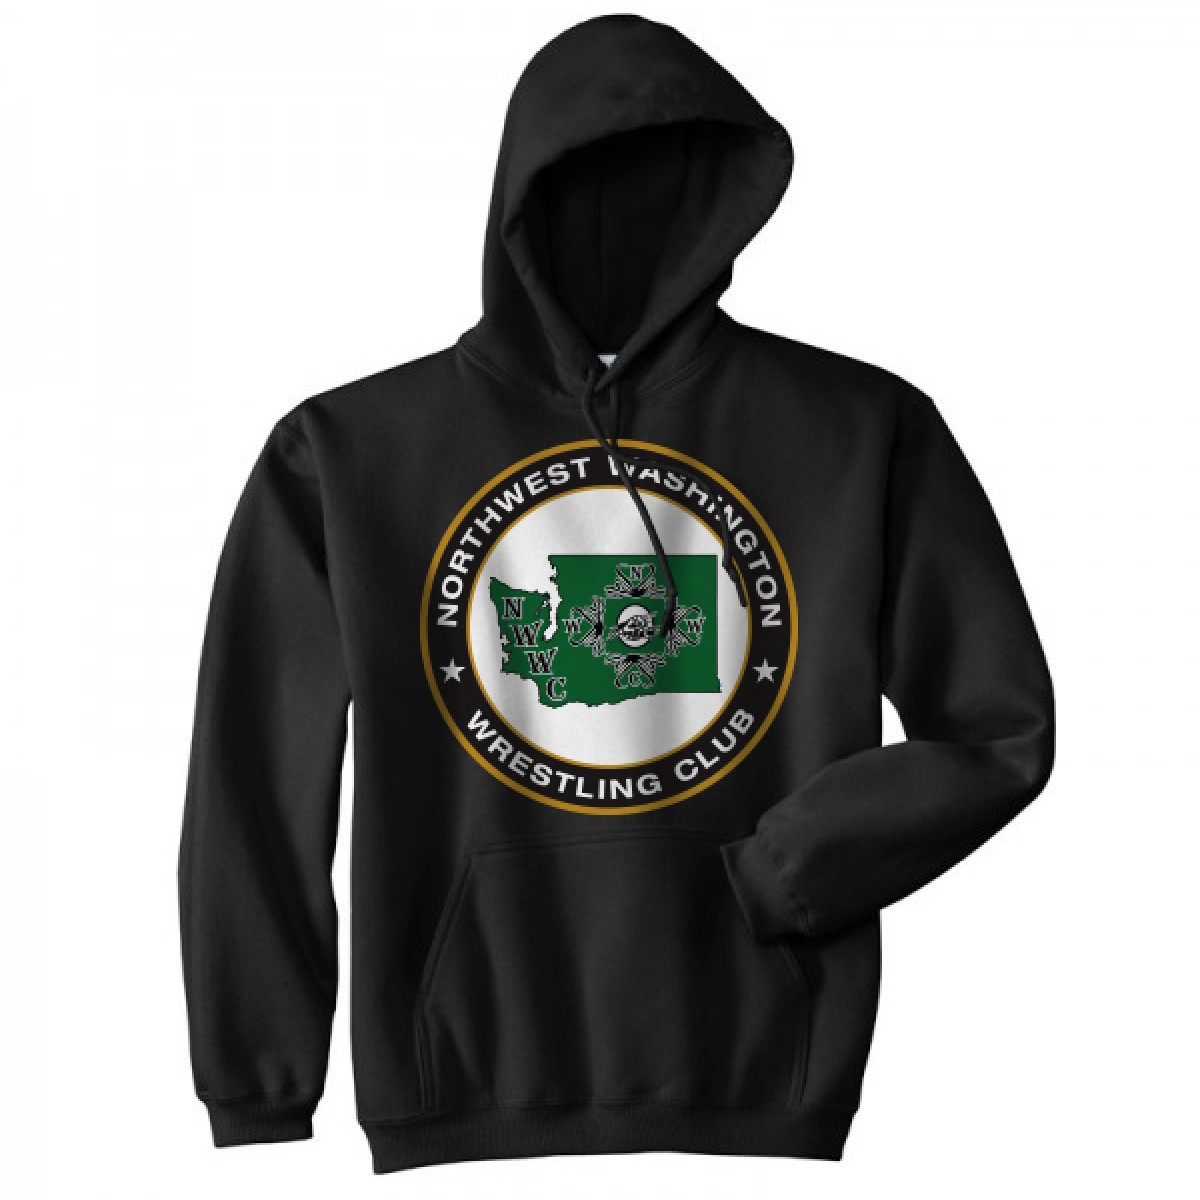 NWWC Black Hoodie With Green Logo-Black-YL